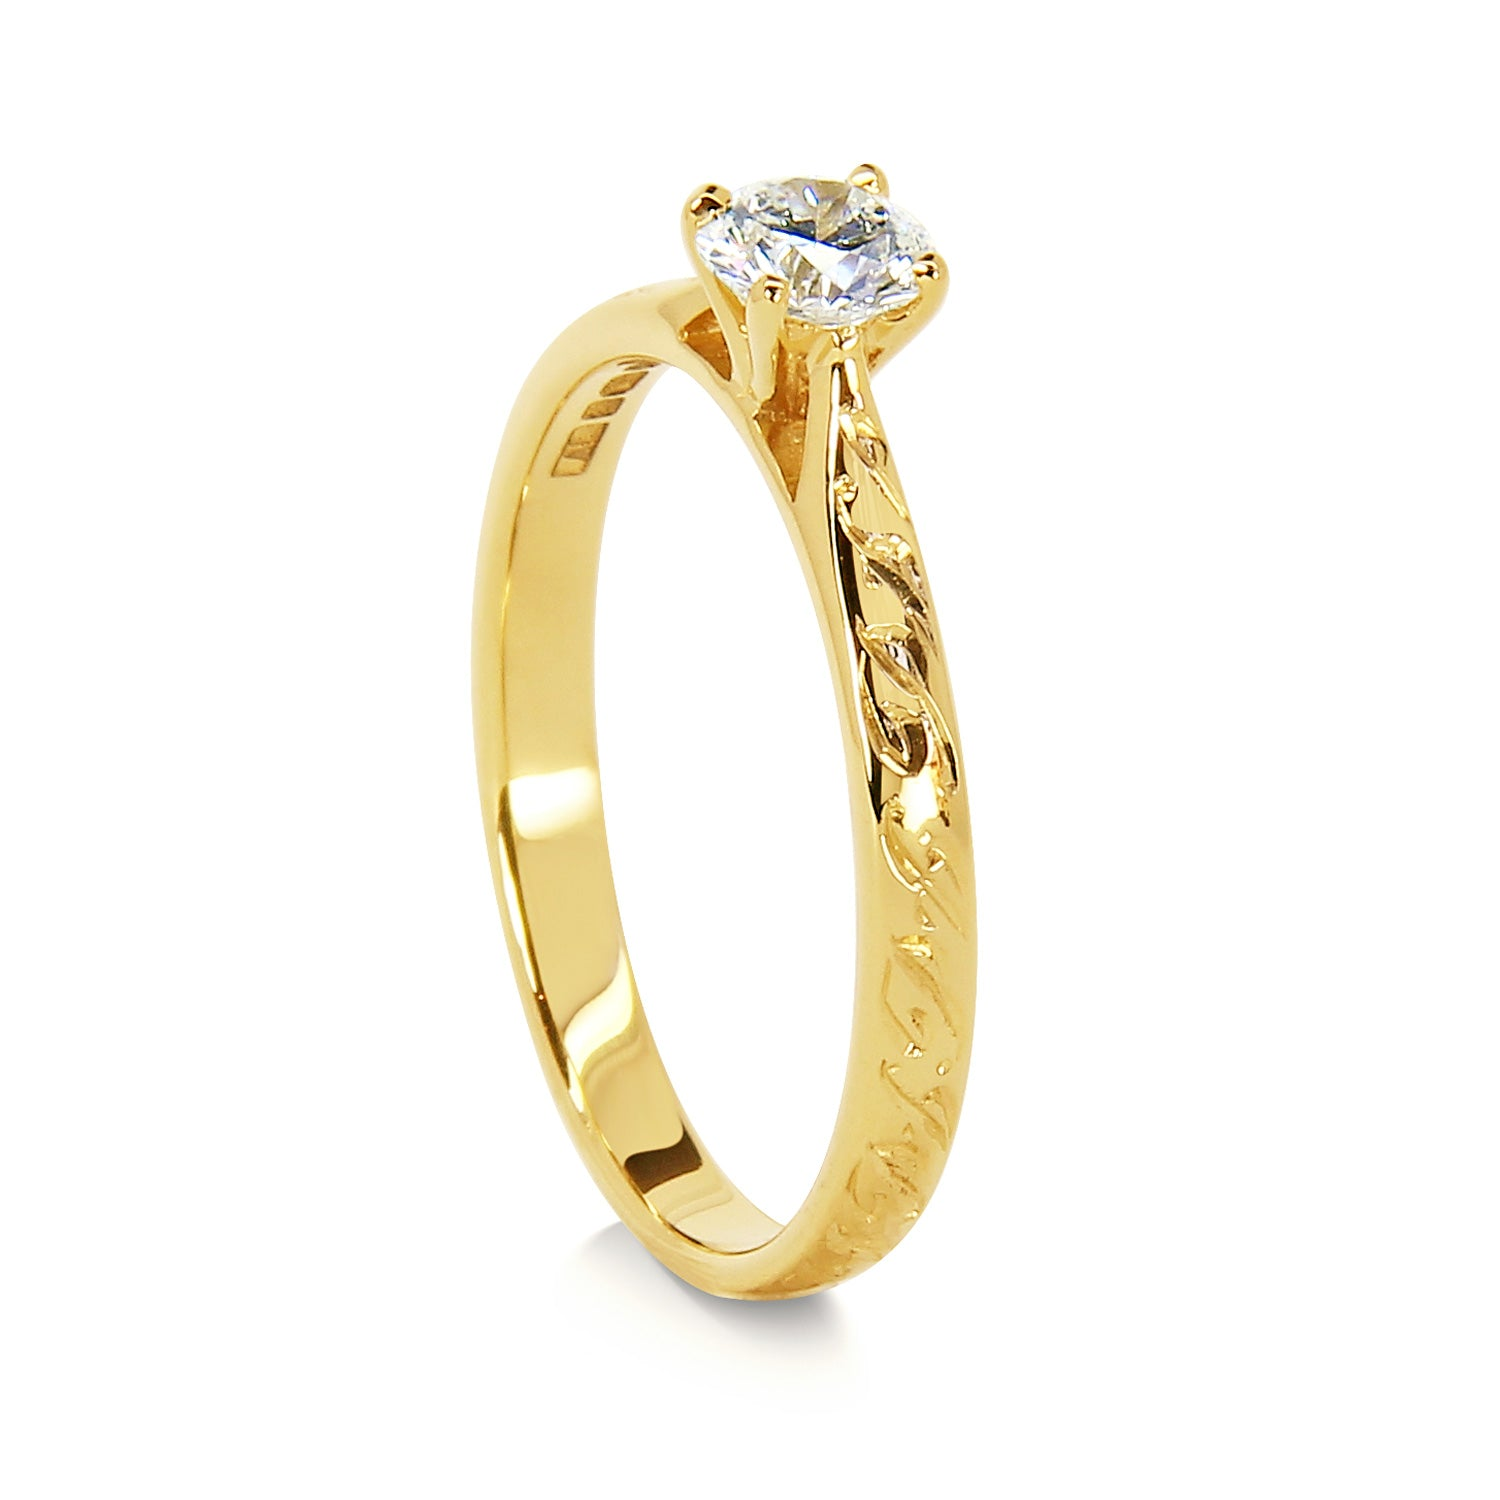 Bespoke Patrick engagement ring - Fairmined Ecological Gold and Canadamark diamond